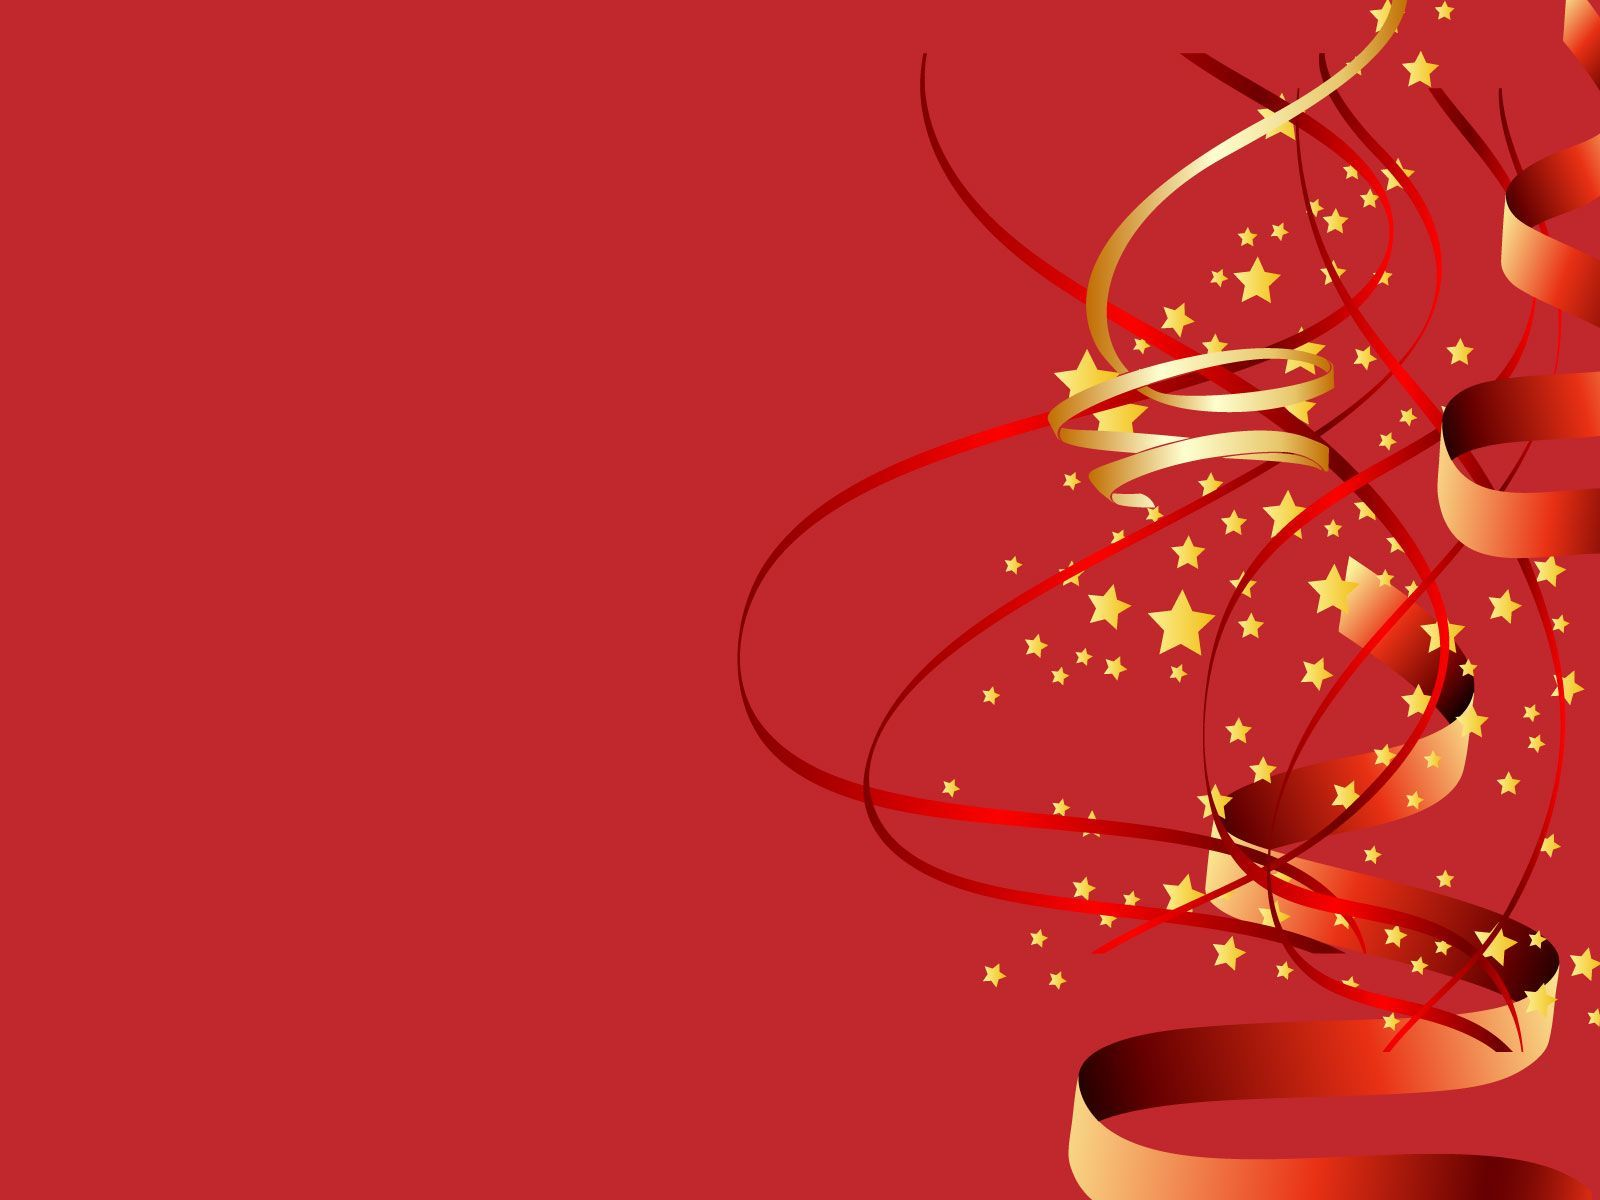 red background for new year image